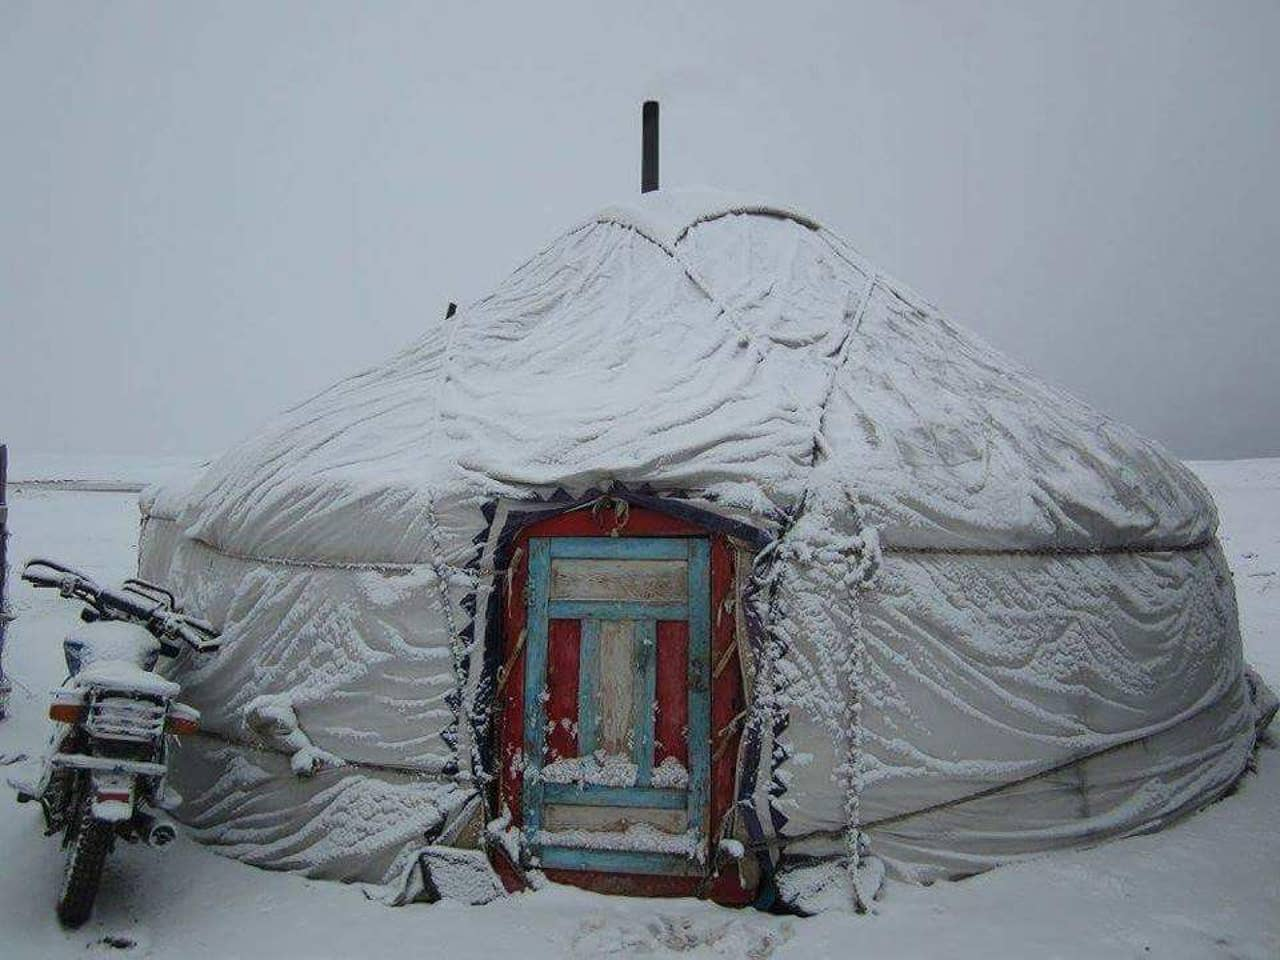 yurt in mongolia airbnb off the grid